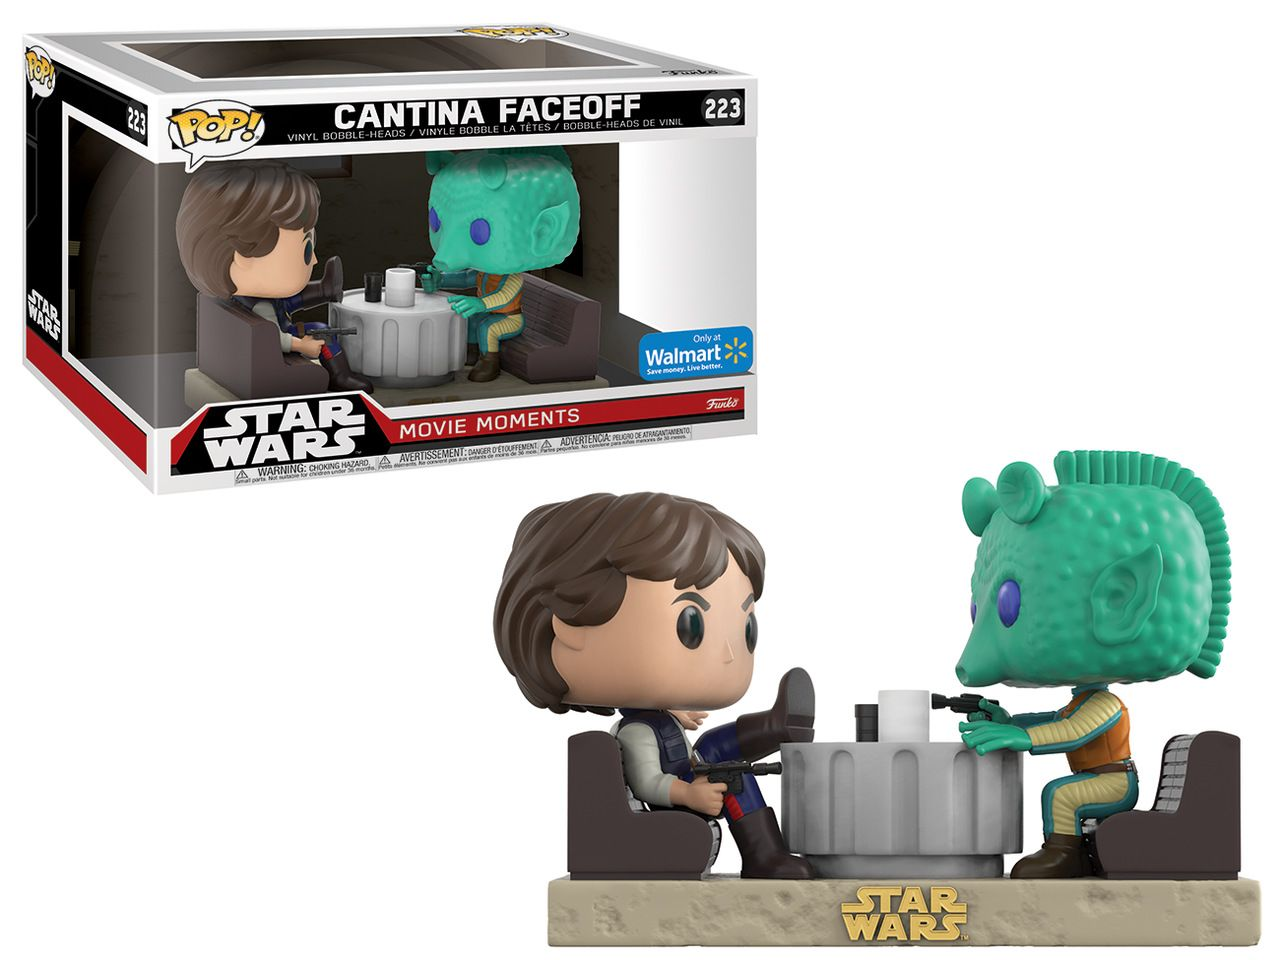 Pop! Cantina Faceoff: Star Wars (Movie Moments) Exclusivo #223 - Funko